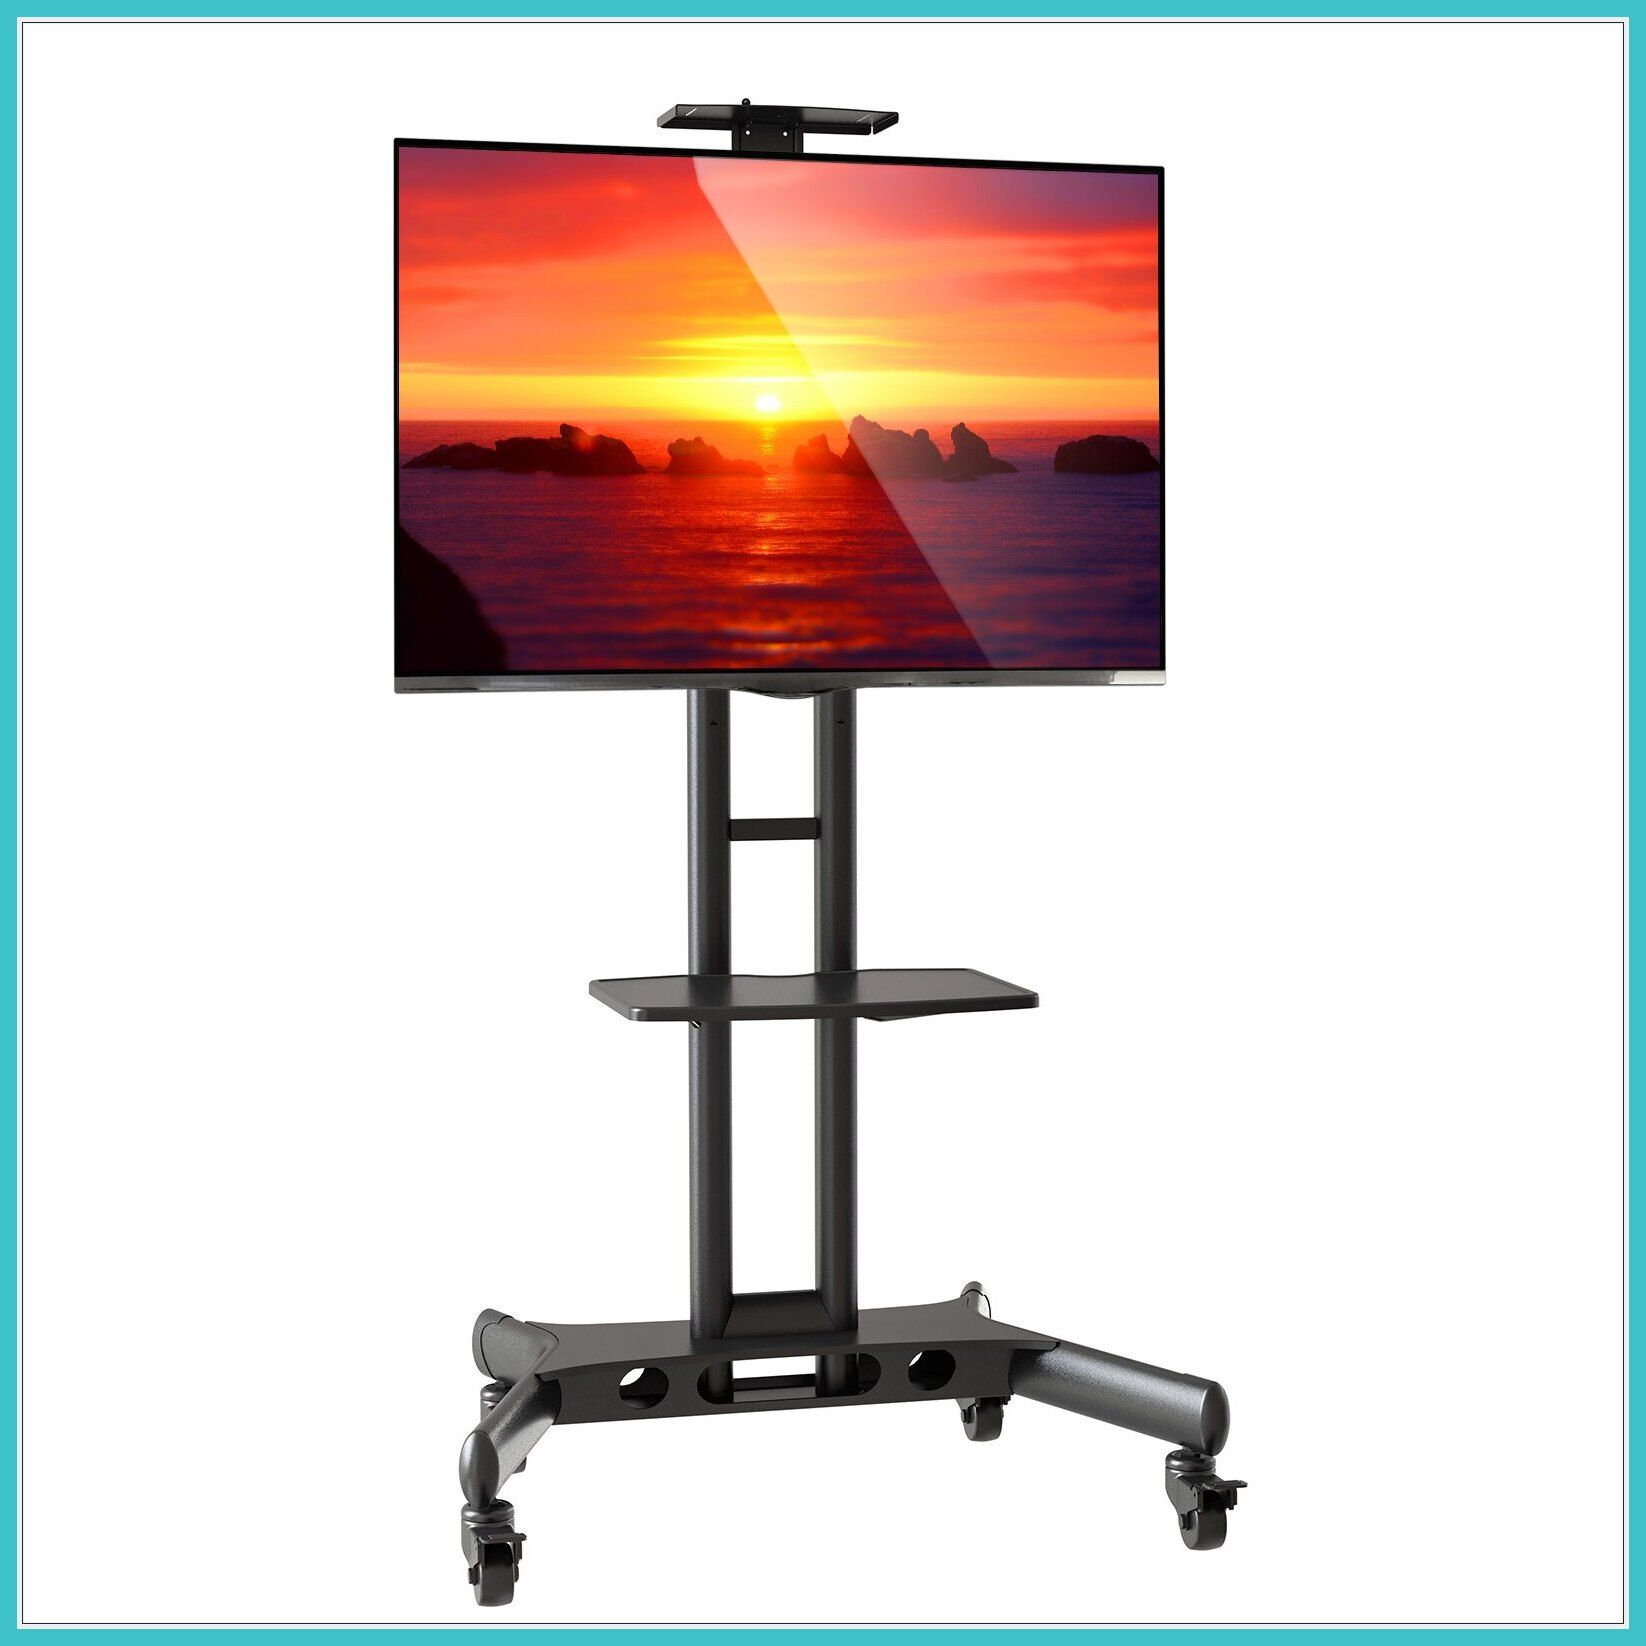 56 Reference Of Wall Mount Movable Tv Stand In 2020 Flat Screen Tv Stand Tv Stand On Wheels Rolling Tv Stand